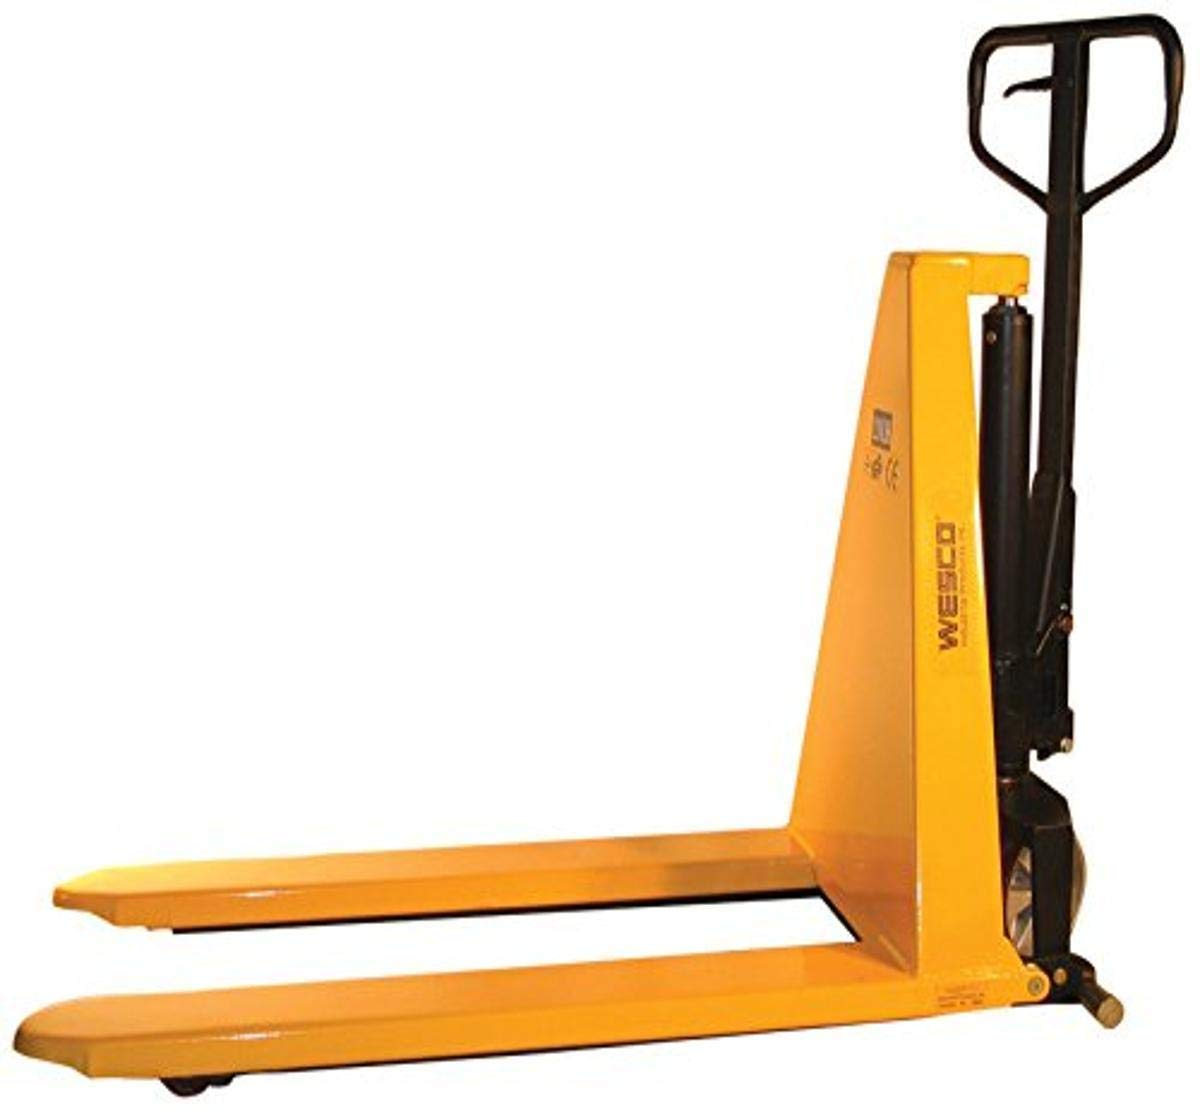 Wesco Industrial Products 272976 Manual Albuquerque Ranking TOP16 Mall Lift High Pa Telescoping